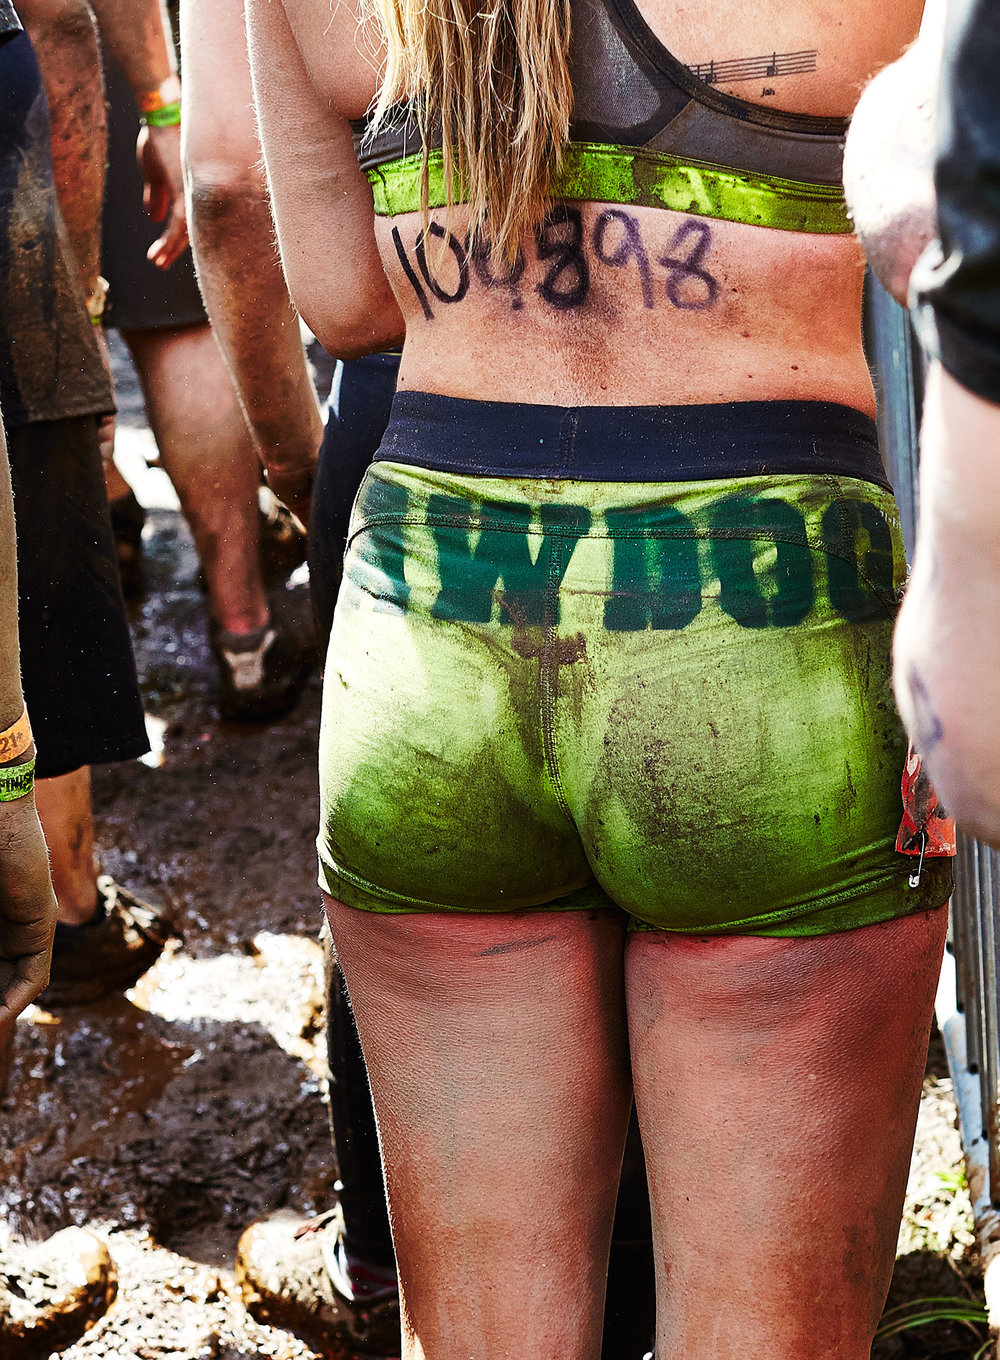 toughmudder_1968-2.jpg